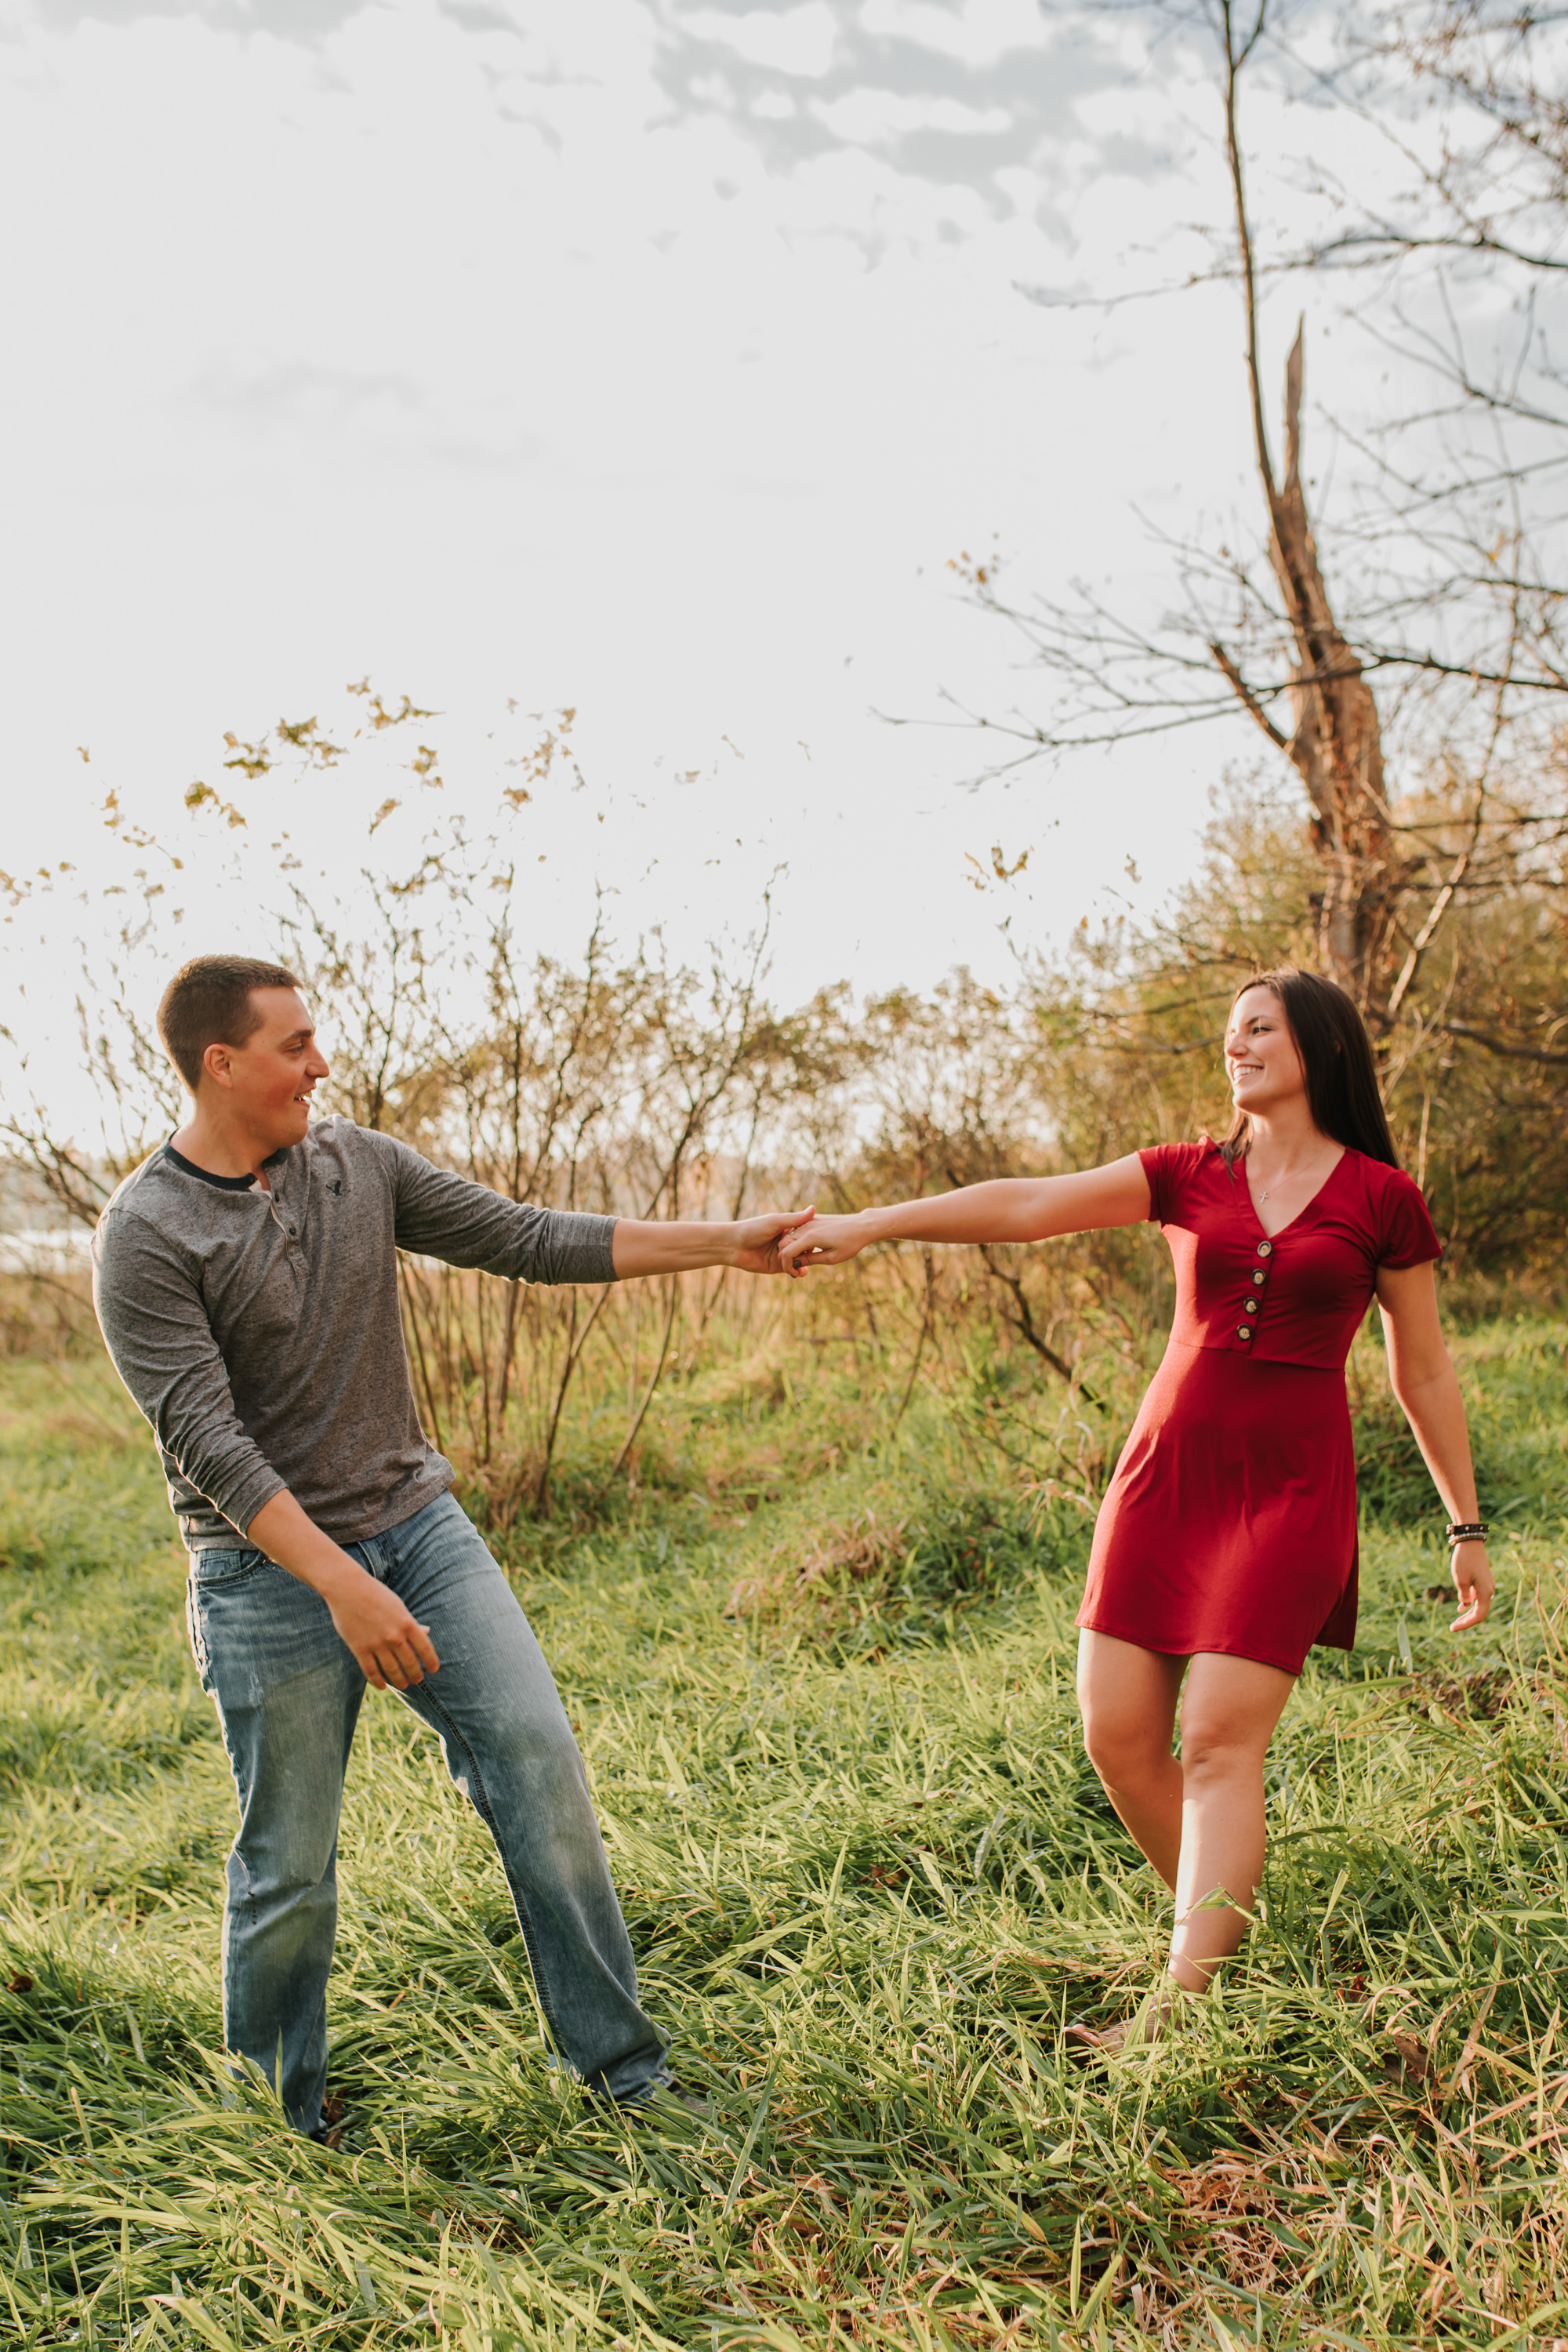 Hannah & Brett - Engaged - Nathaniel Jensen Photography - Omaha Nebraska Wedding Photograper - Omaha Nebraska Engagement Session - Chalco Hills Engagement Session-125.jpg